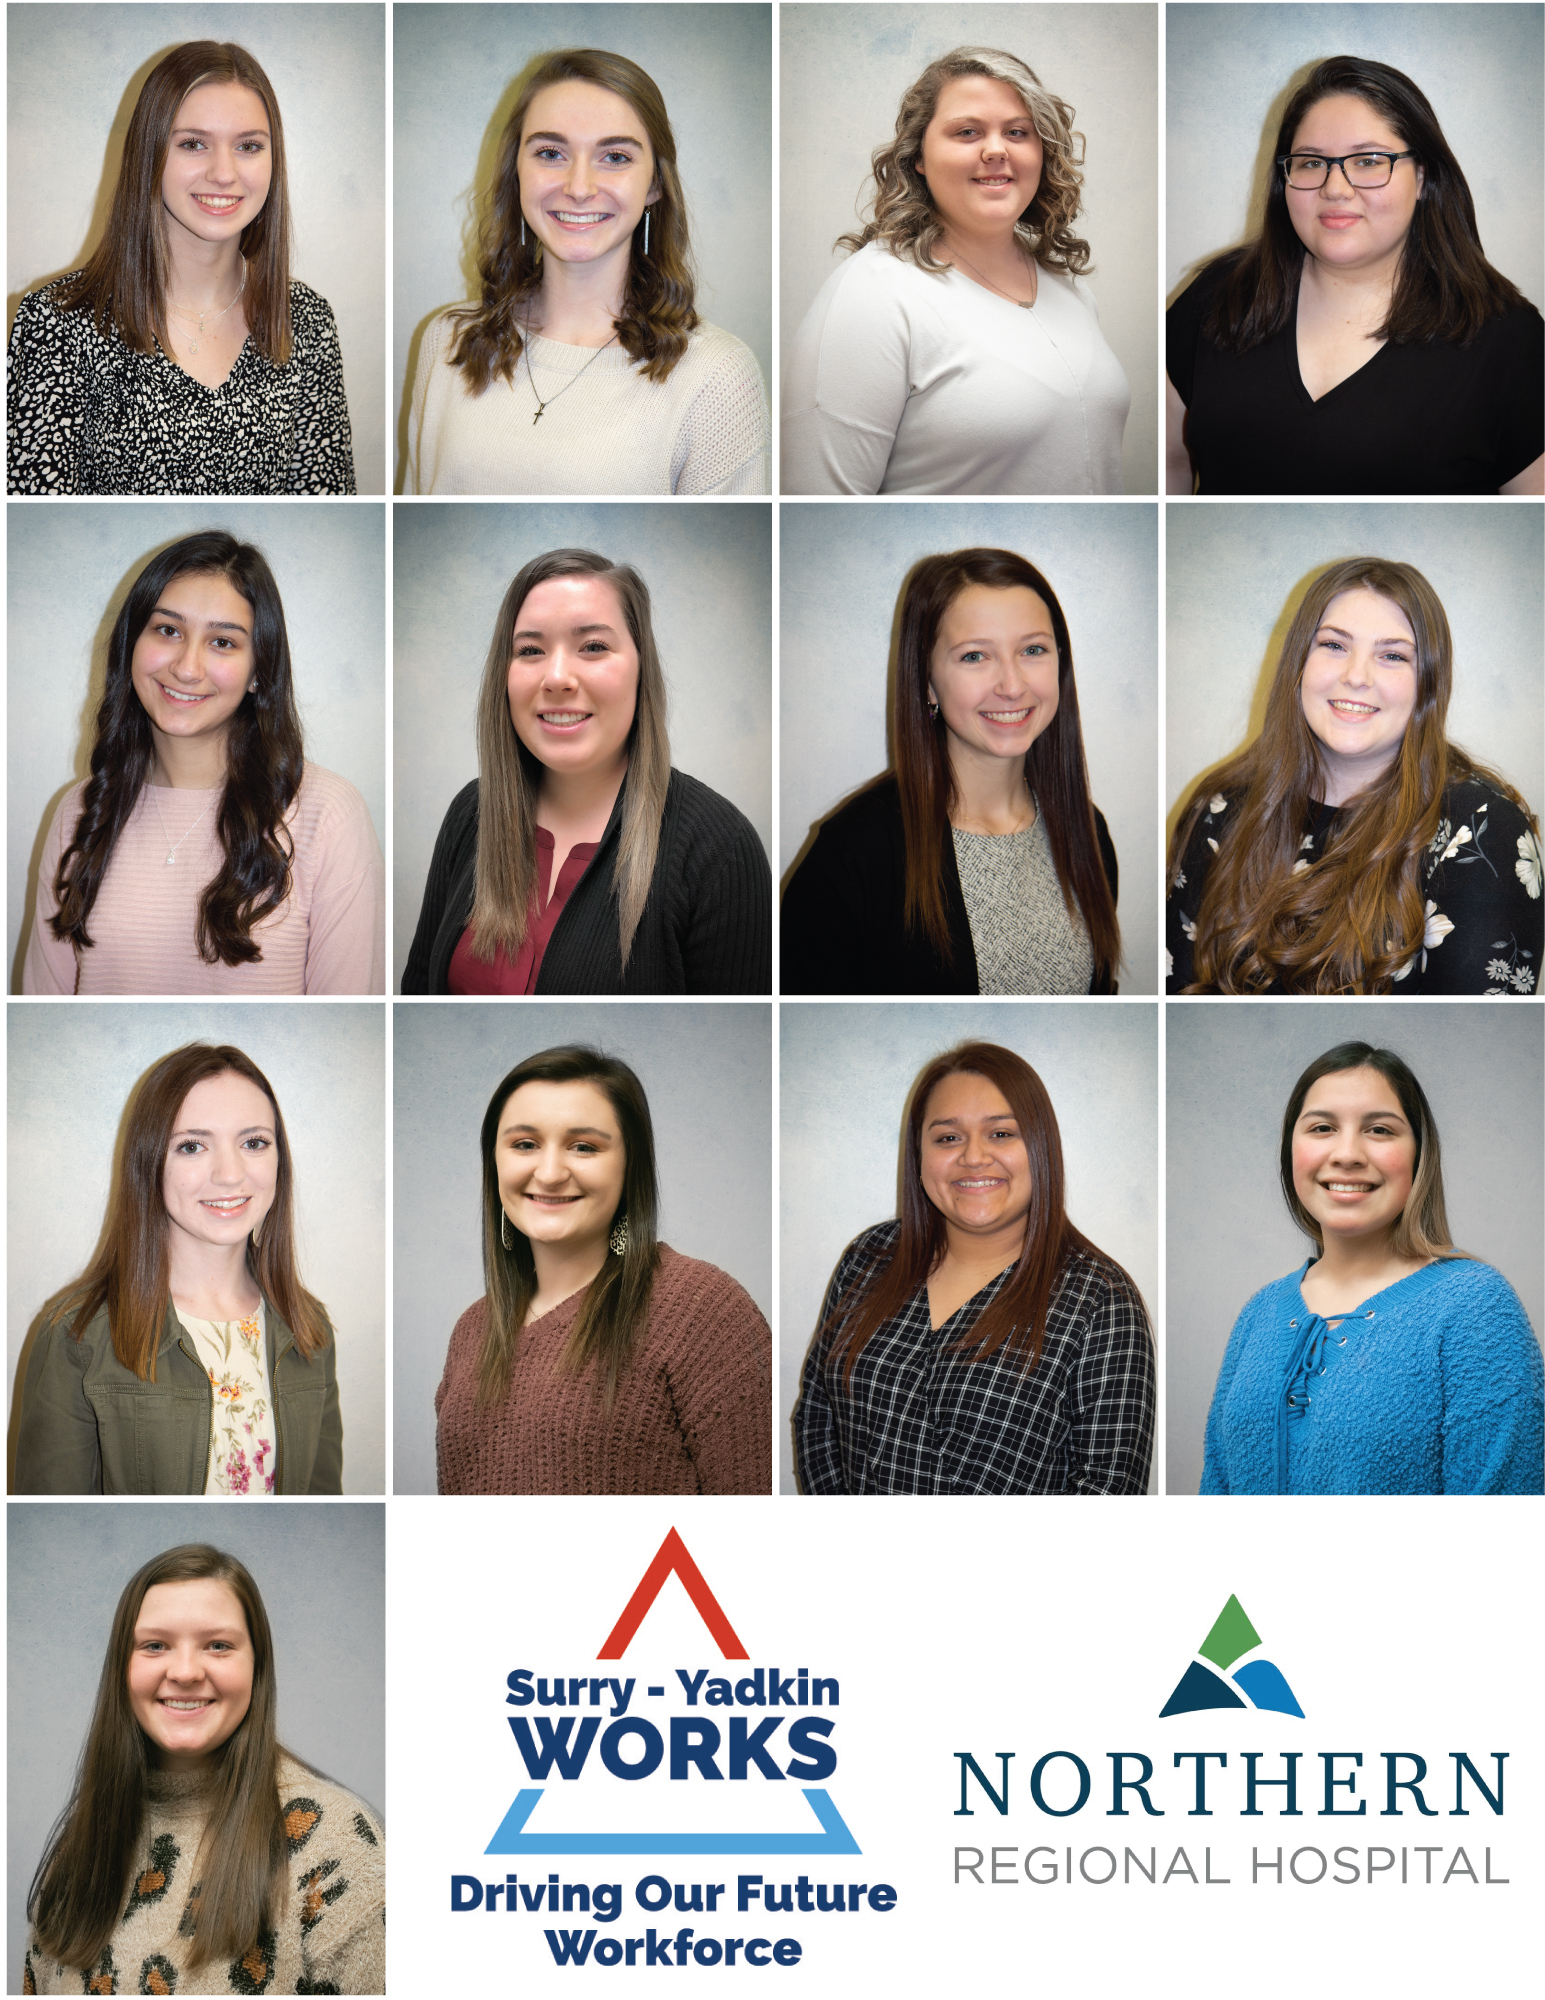 Surry-Yadkin Works Interns at Northern